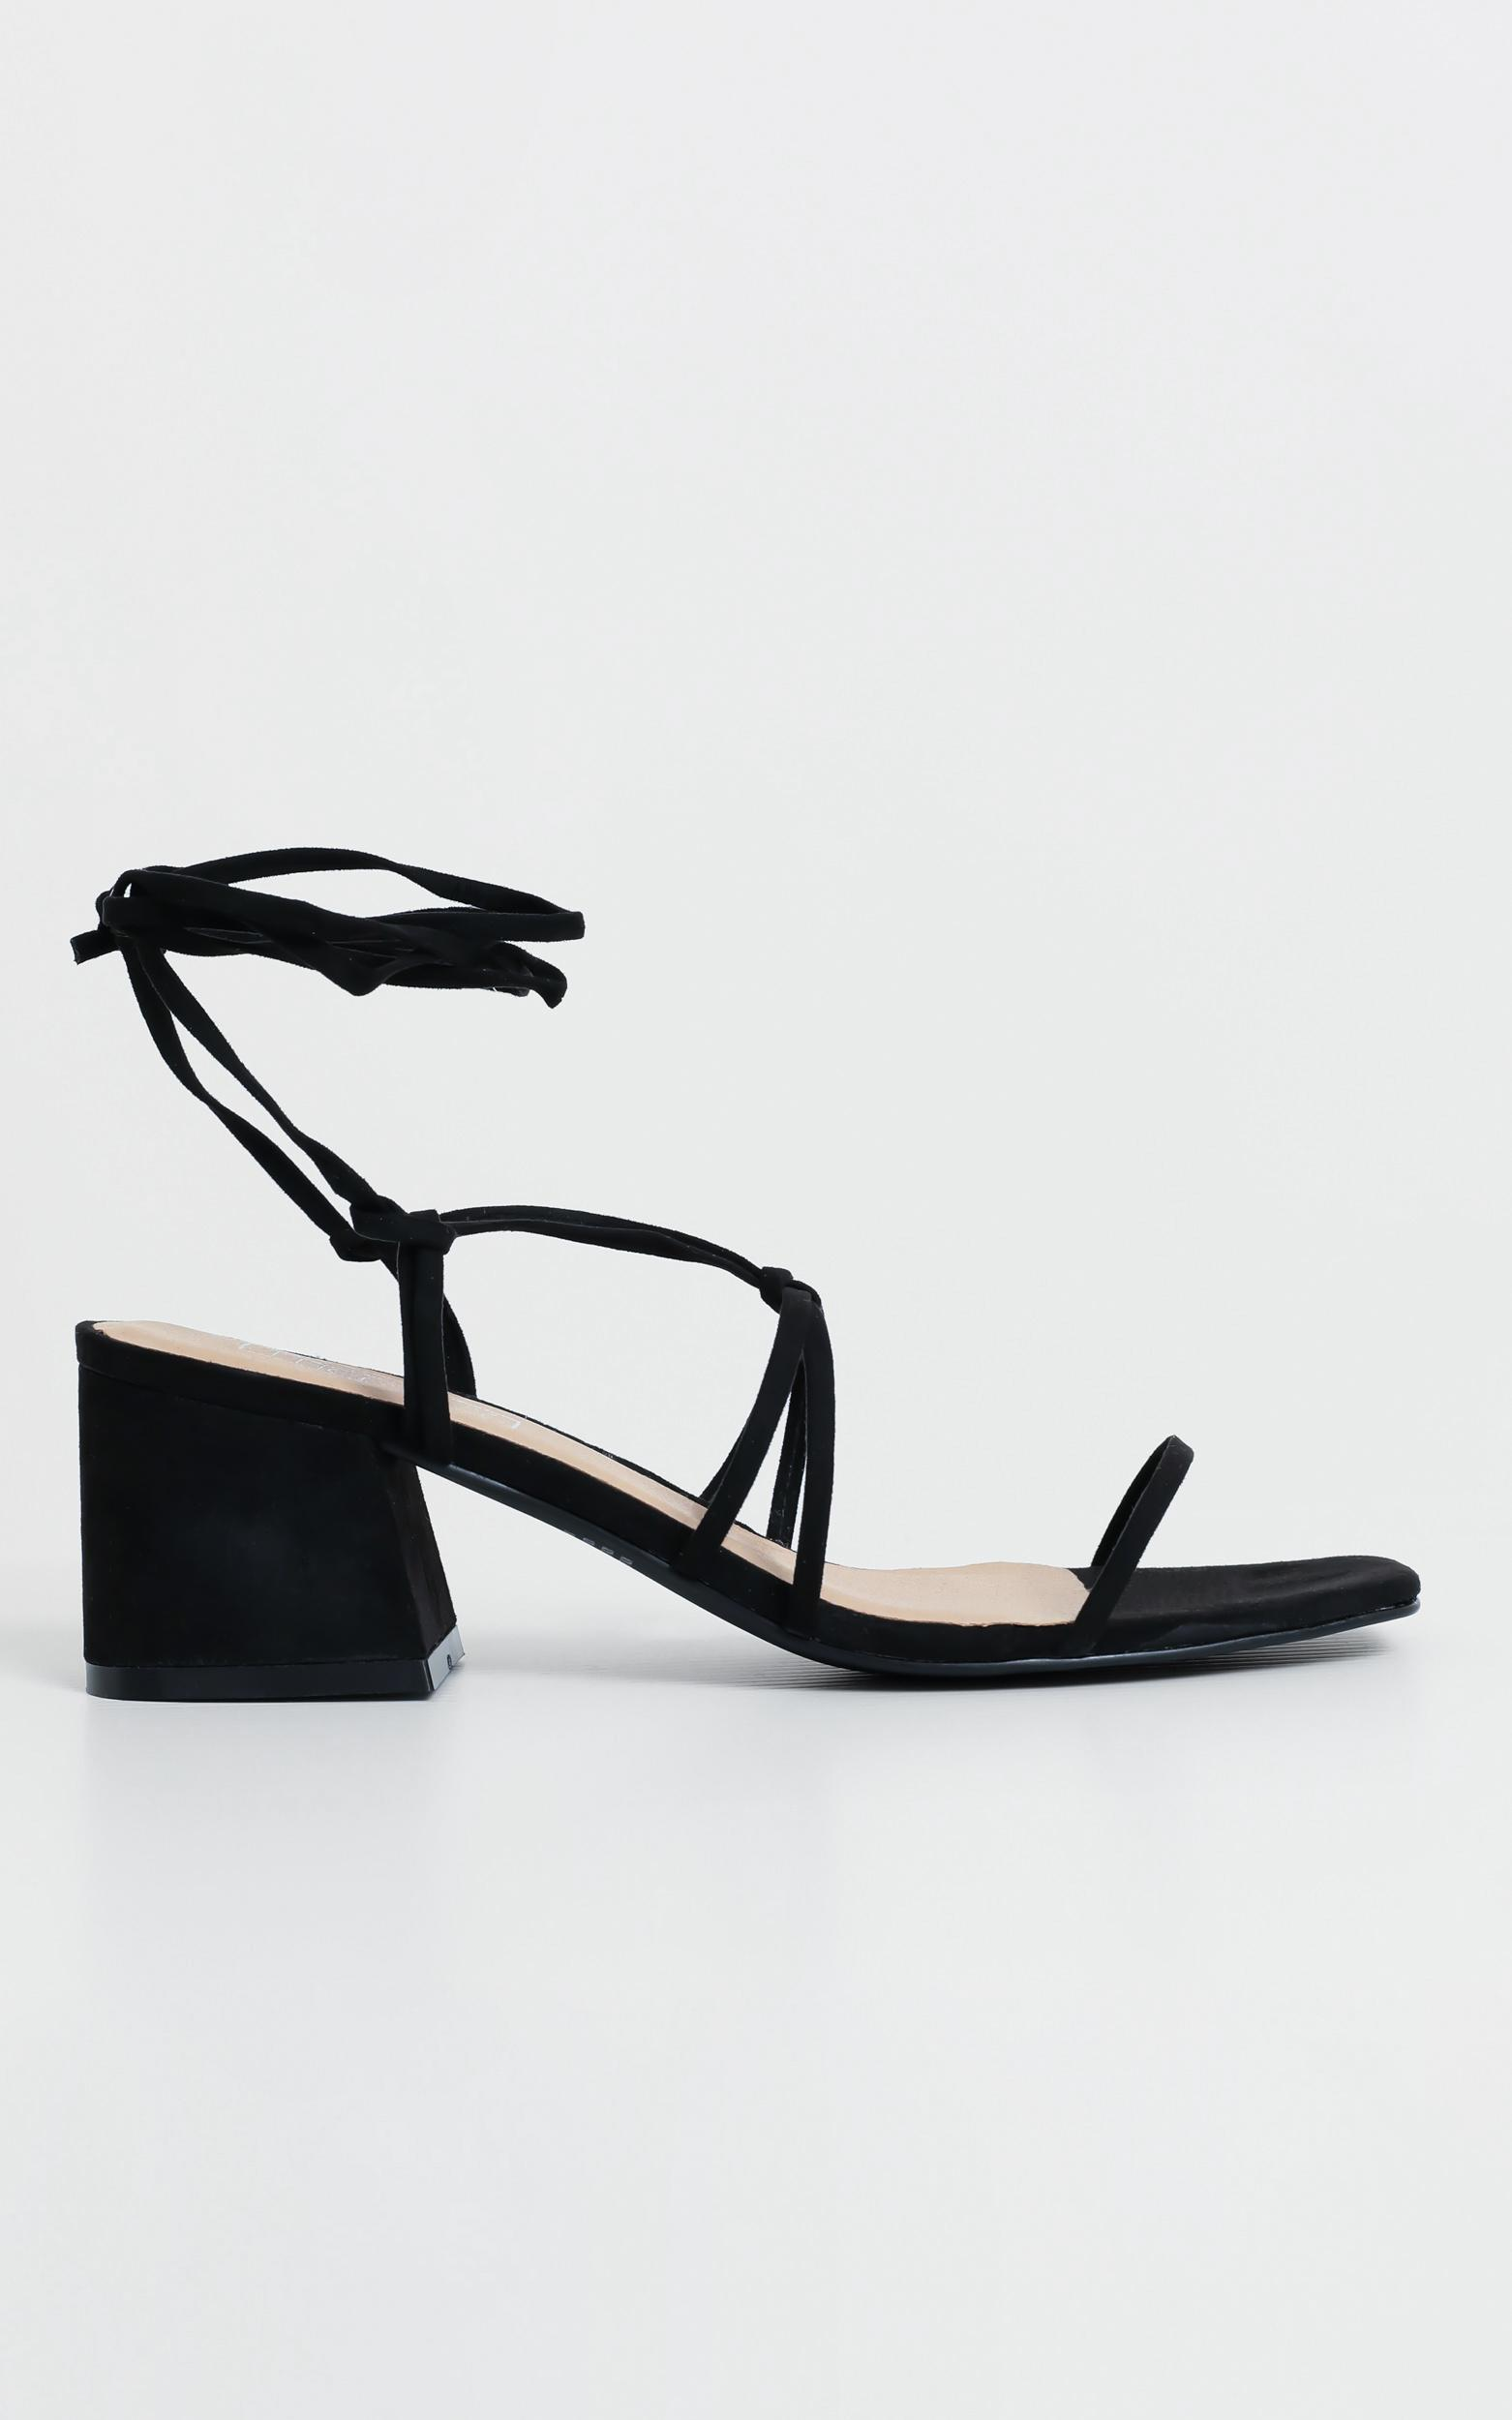 Therapy - Ariva Heels in Black Suedette, Black, hi-res image number null